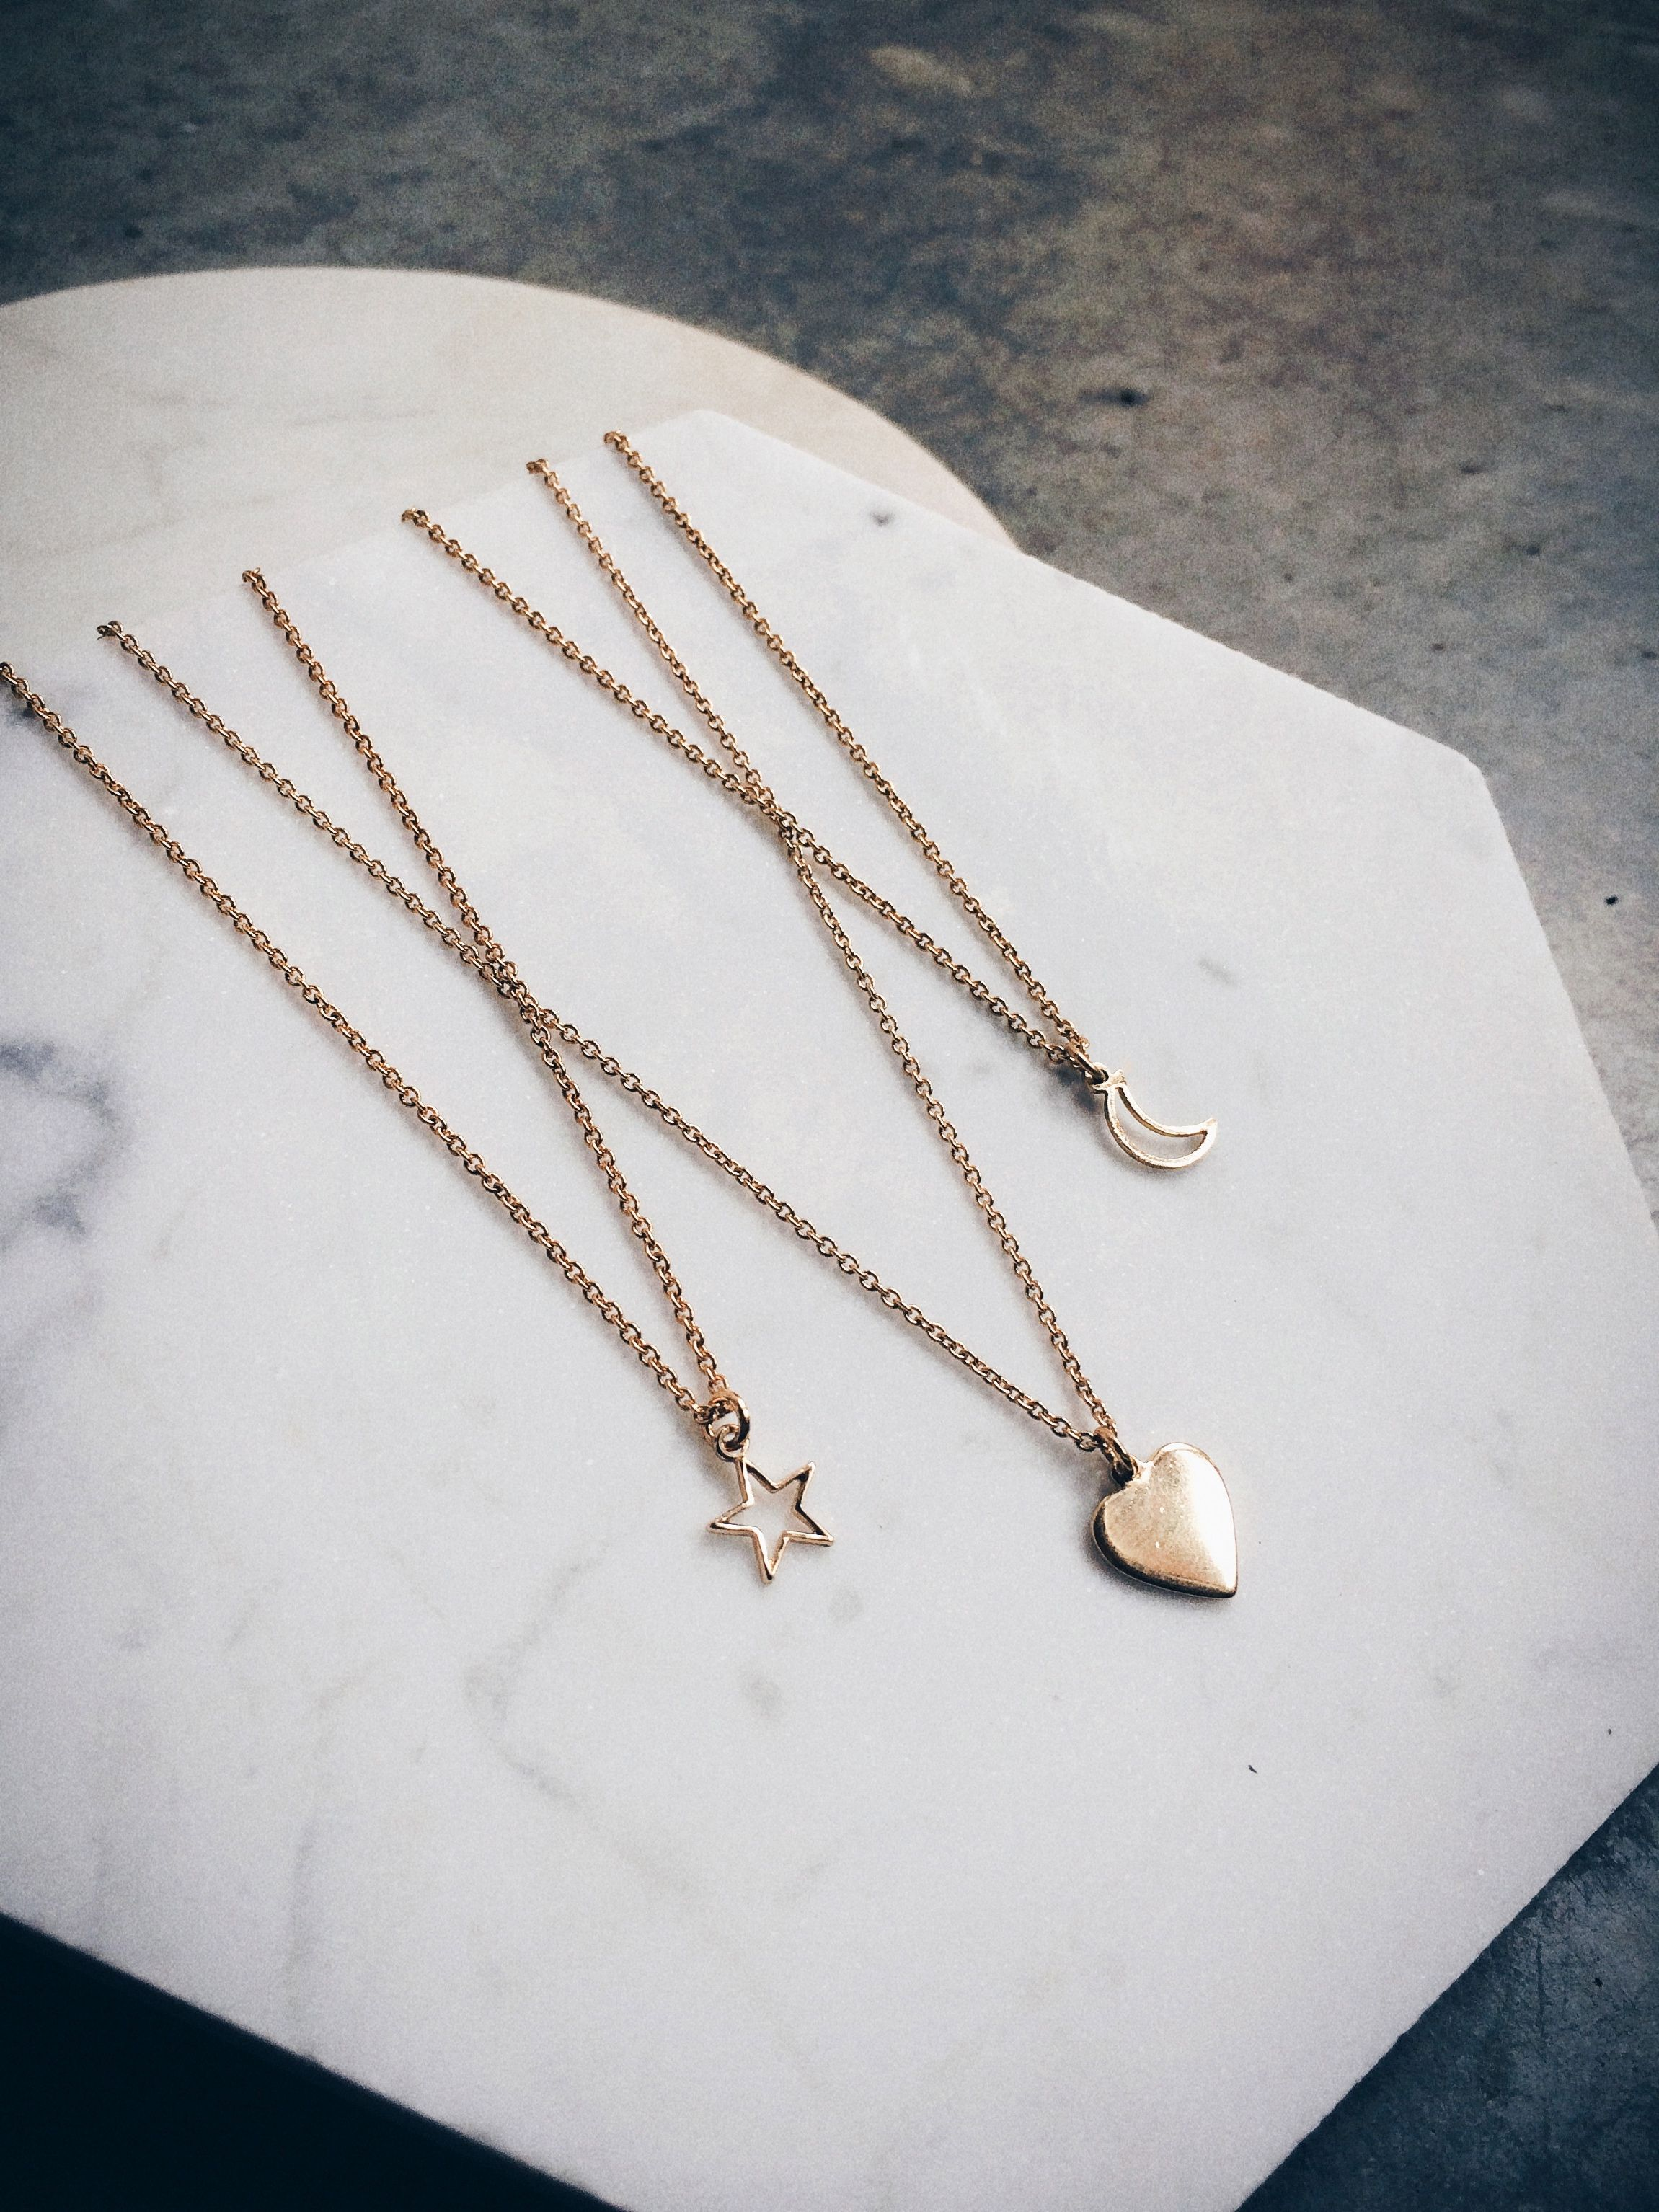 Layer up your delicate 14k gold necklaces...xxBB